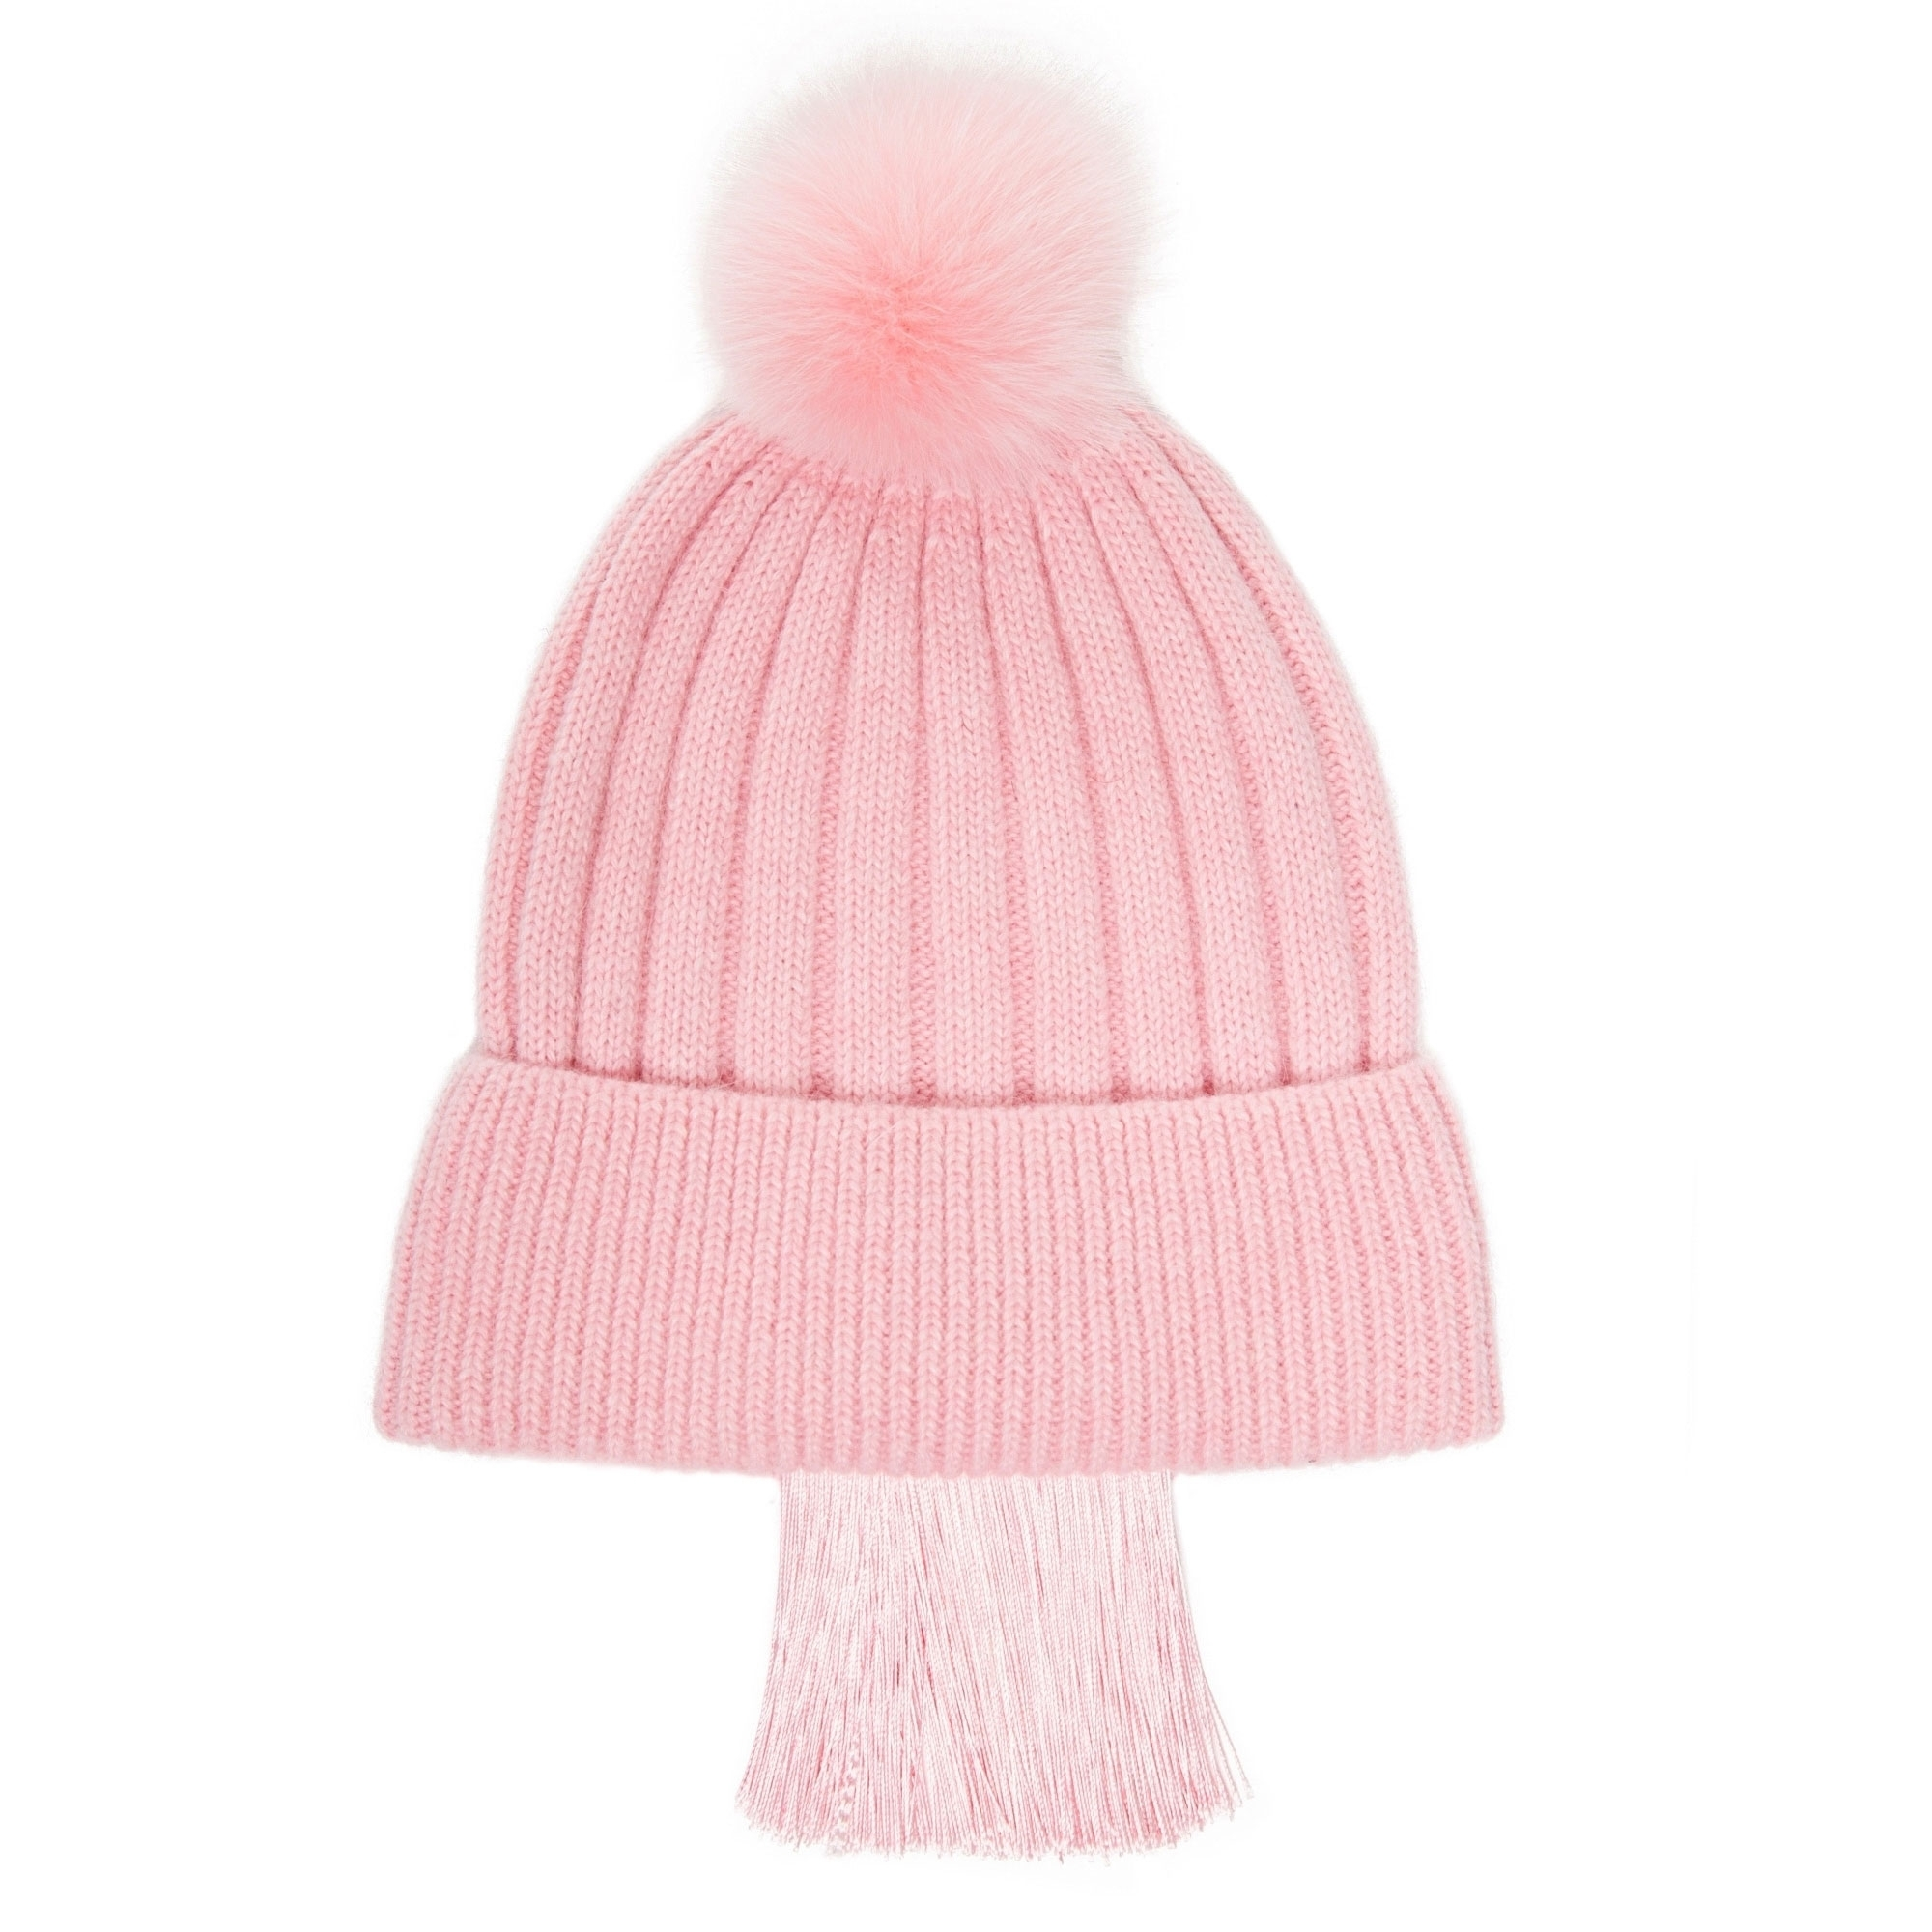 3eedb40140e SIN S SUIT Pink Tassels Fringe Knit Beanie - Accessories from ...